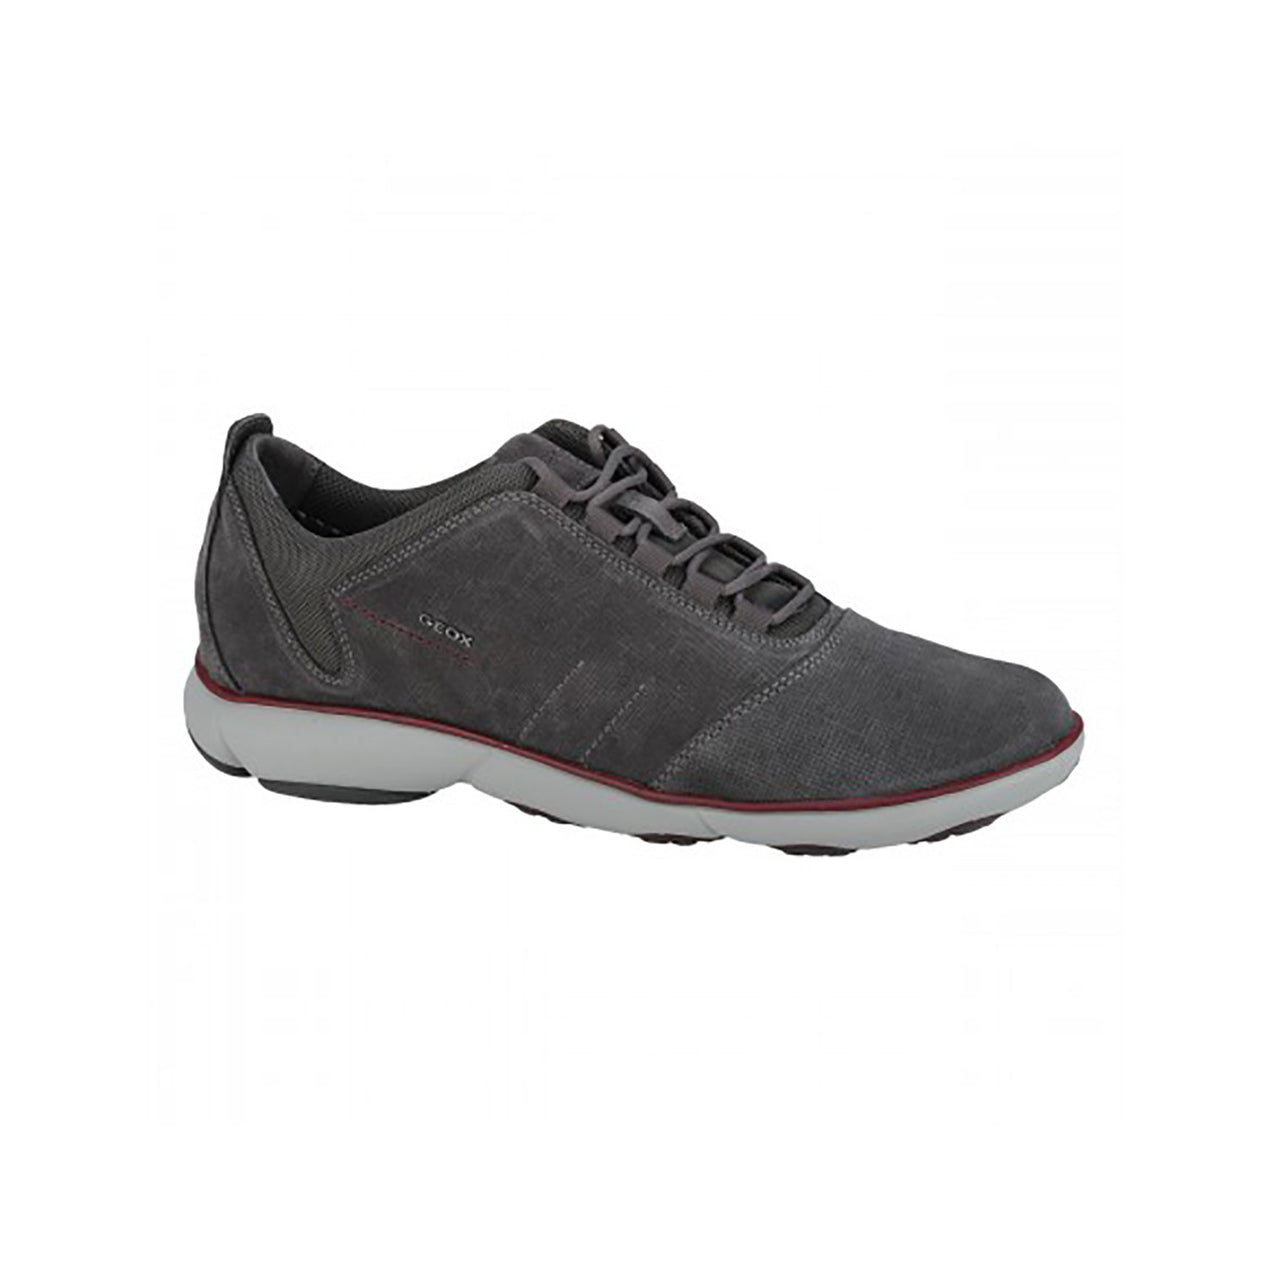 Chaussures sport Nebula Homme